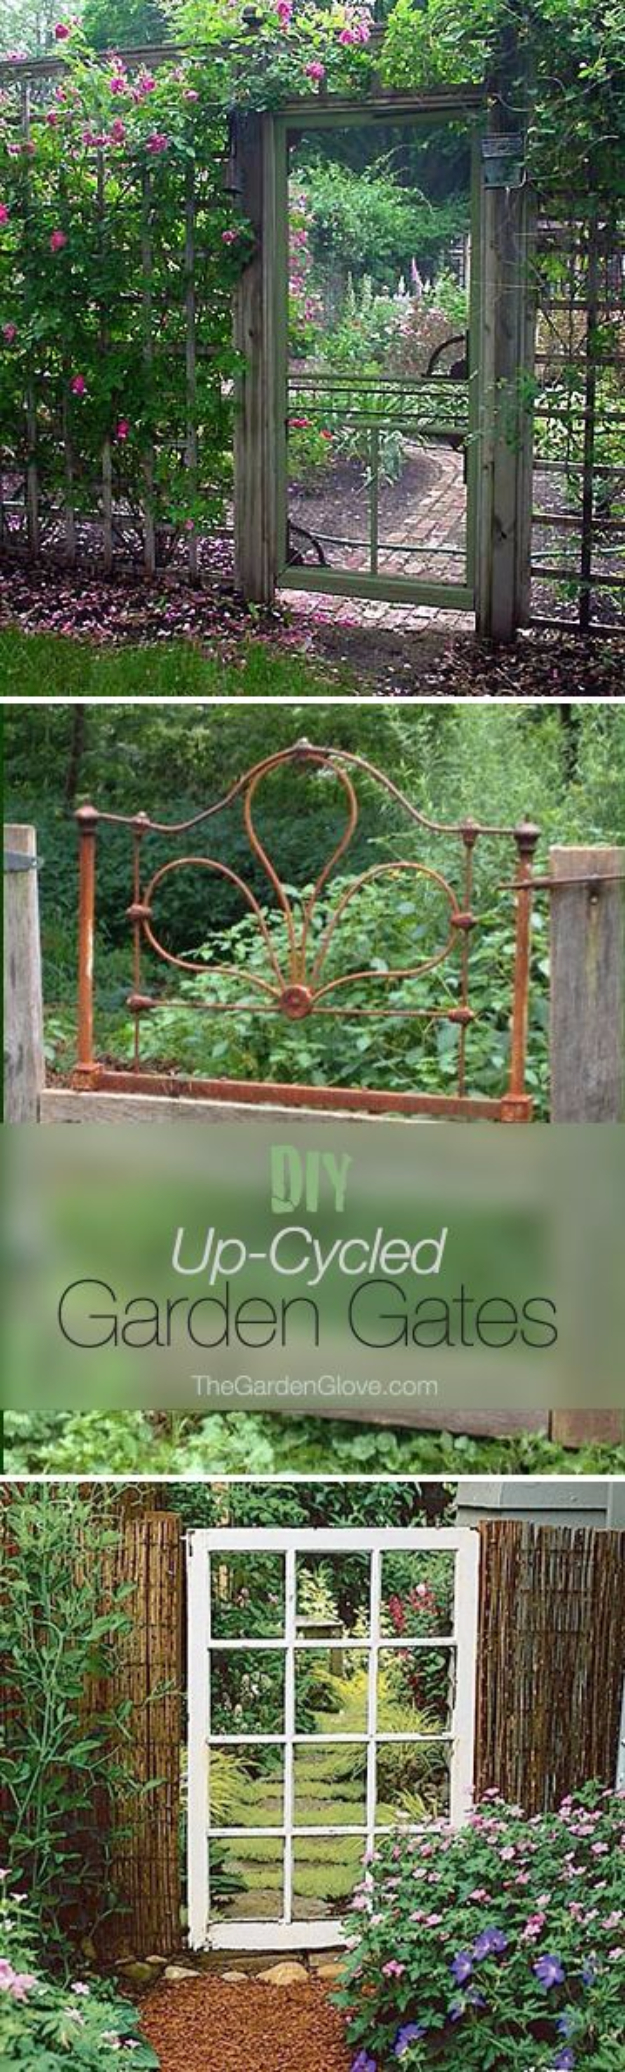 DIY Fences and Gates - DIY Up-Cycled Garden Gates - How To Make Easy Fence and Gate Project for Backyard and Home - Step by Step Tutorial and Ideas for Painting, Updating and Making Fences and DIY Gate - Cool Outdoors and Yard Projects http://diyjoy.com/diy-fences-gates